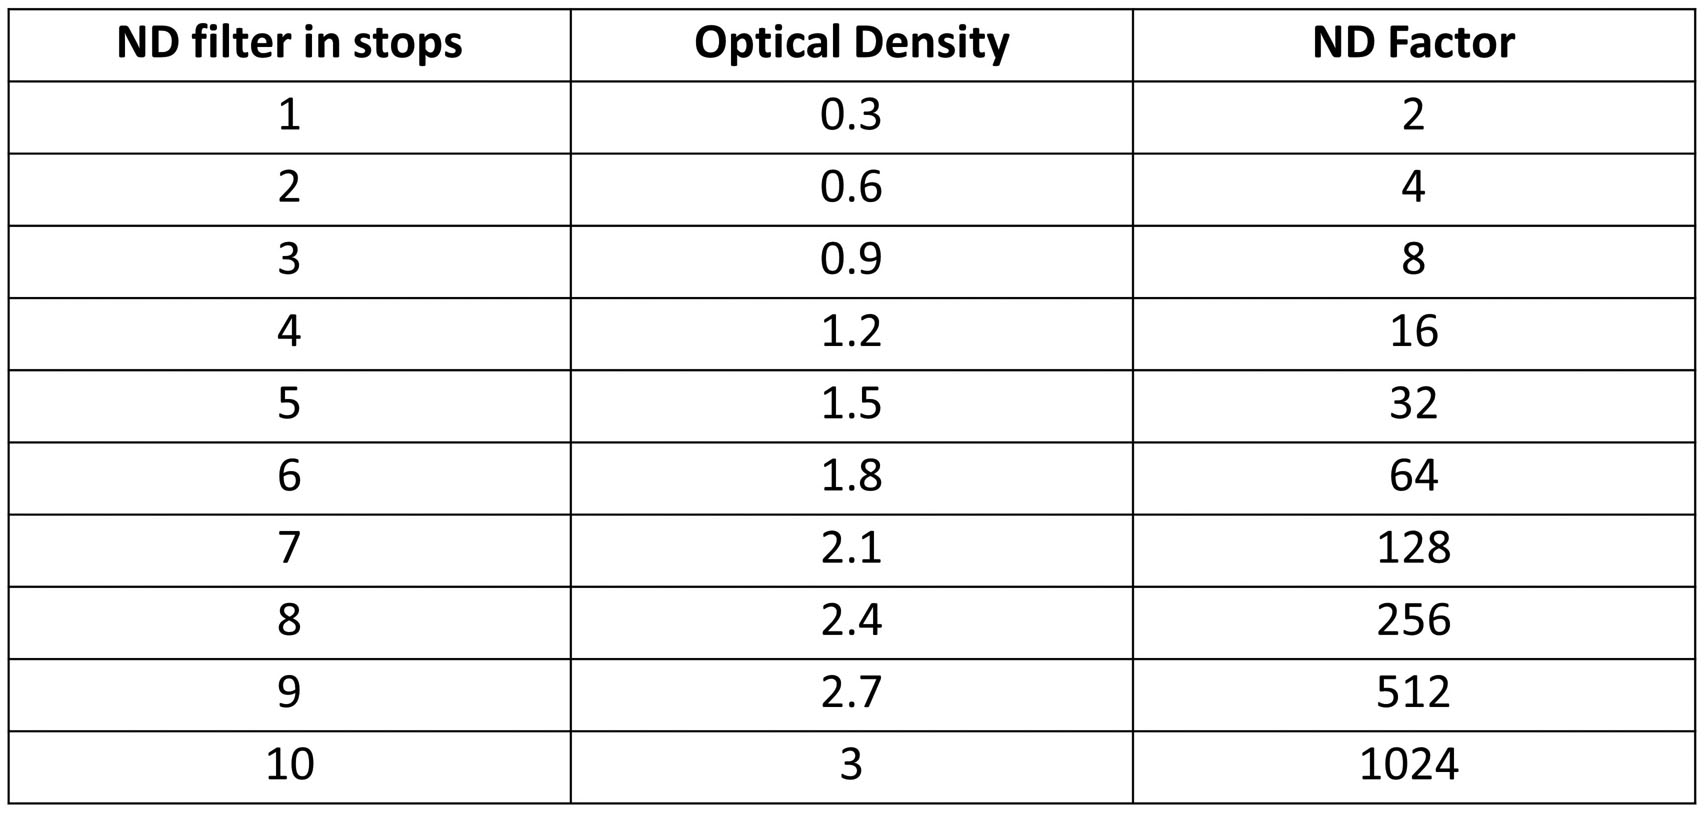 Stops, Optical Density and ND Factor equivalent chart